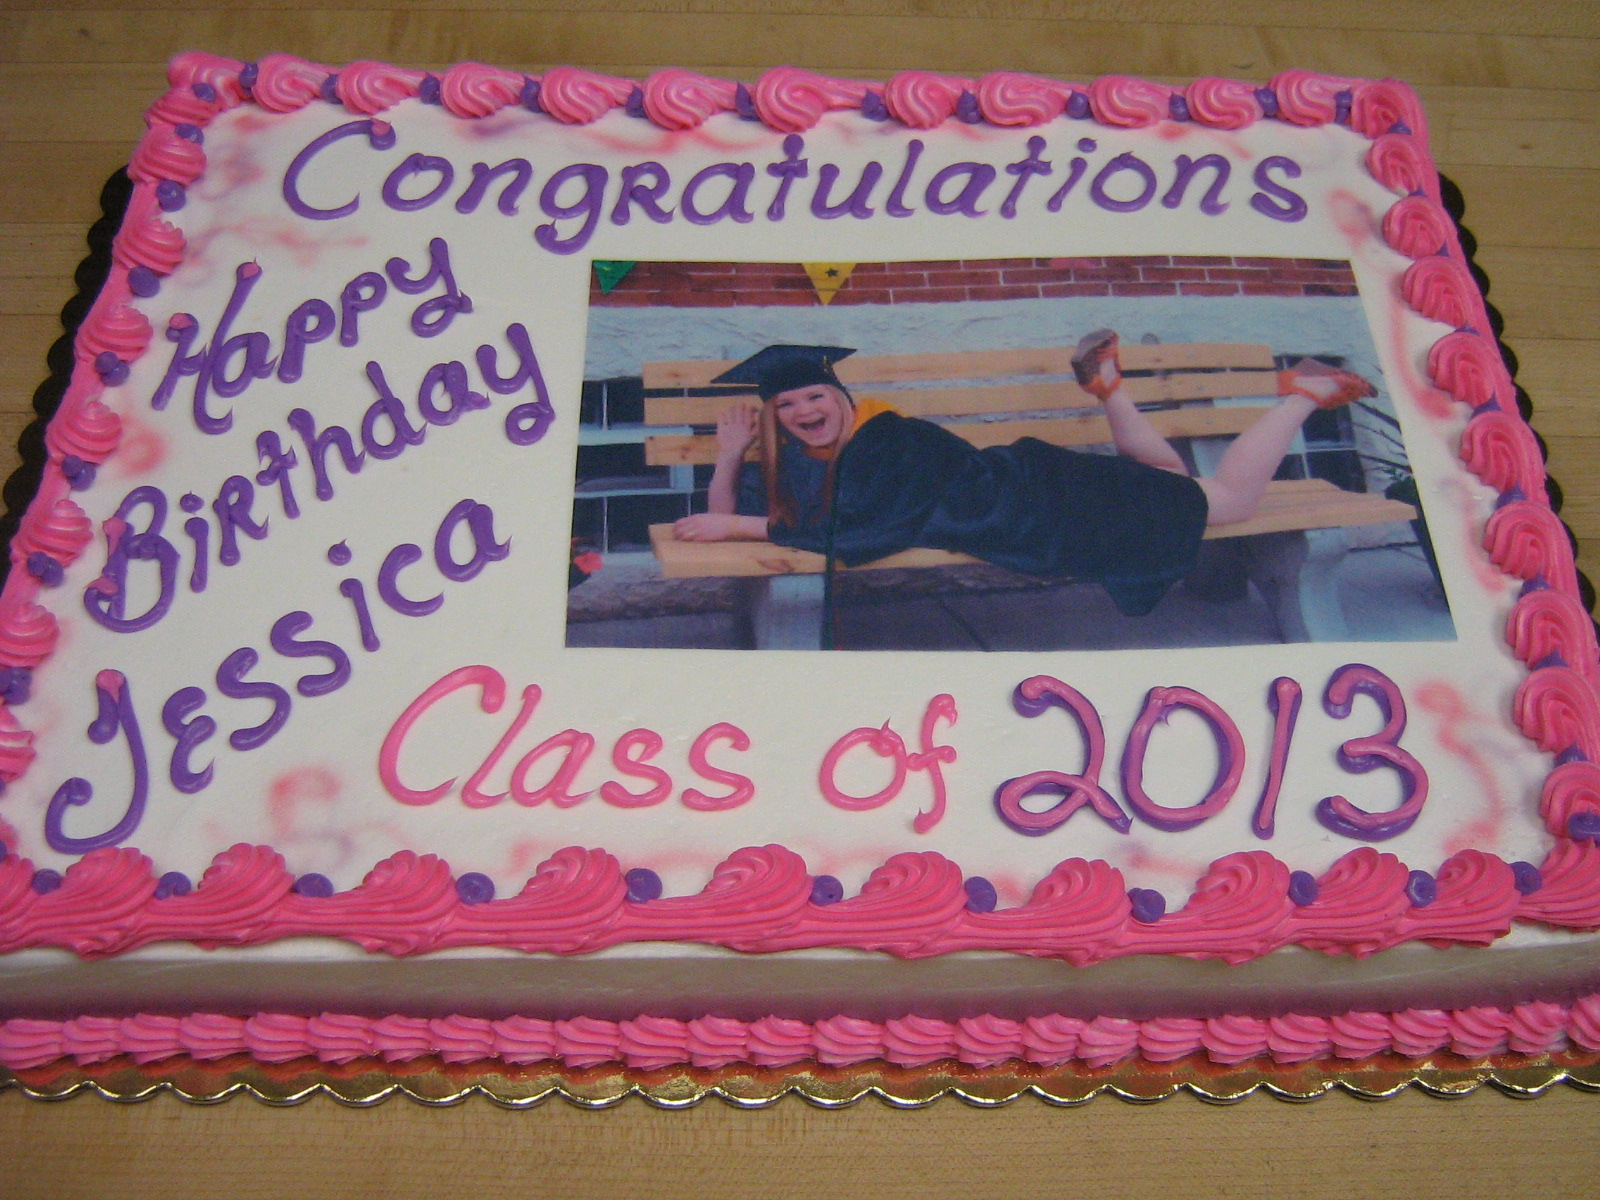 Full sheet graduation cake in pink and purple with edible kopyjet picture.